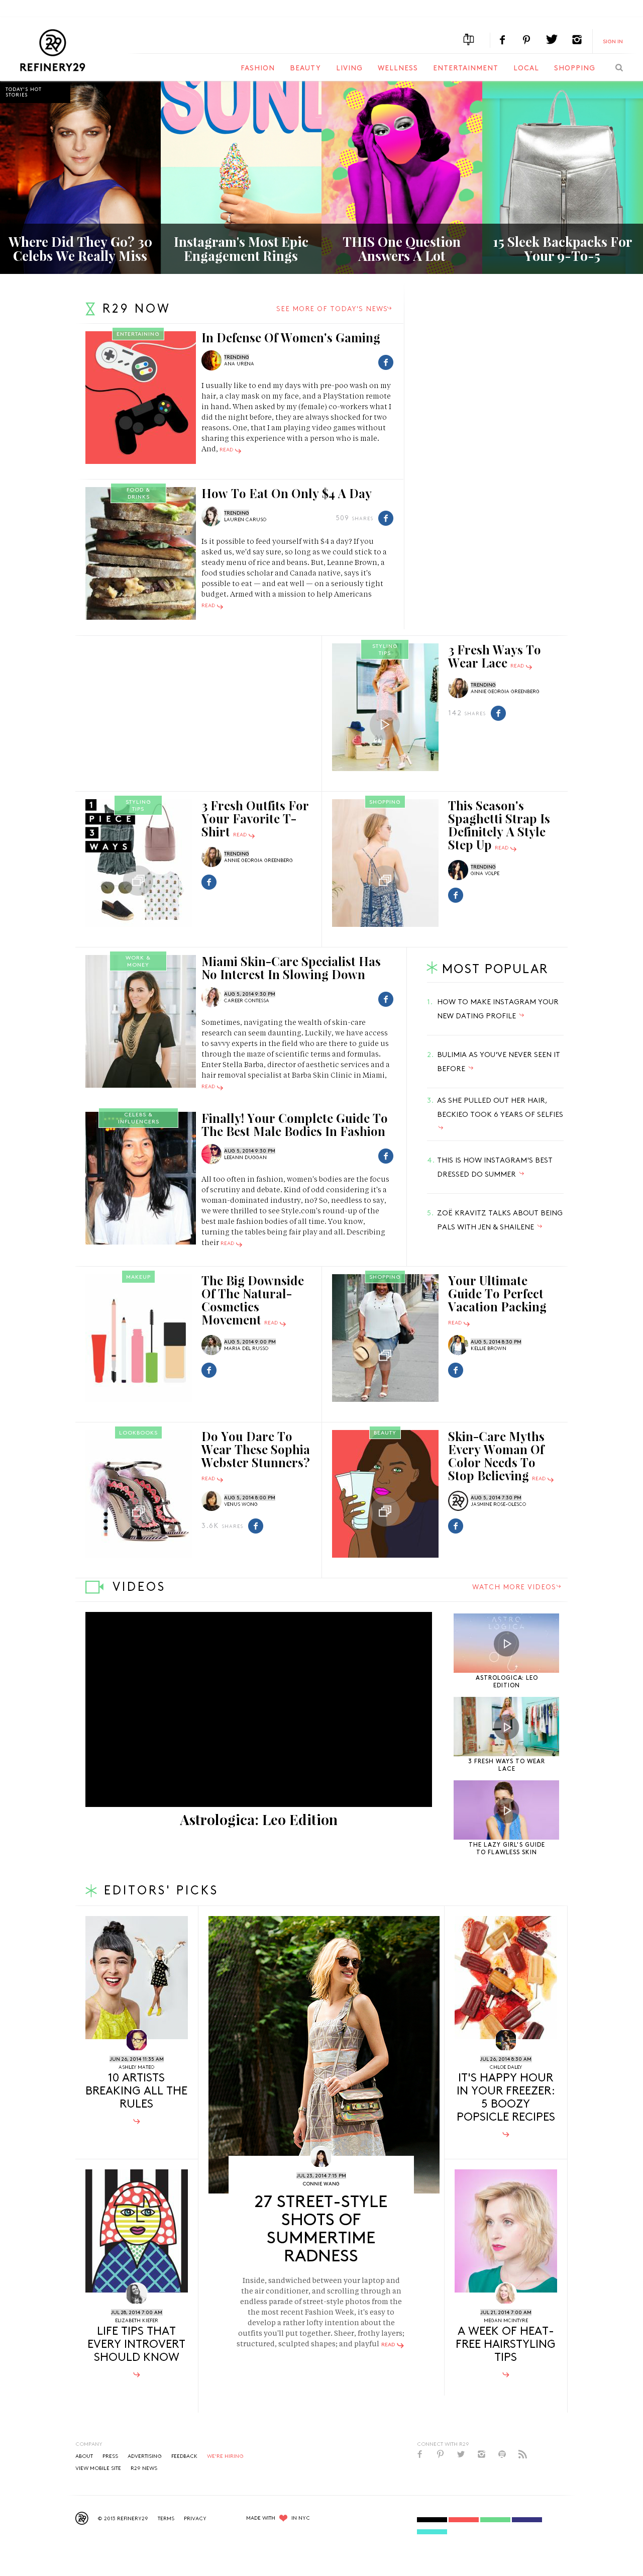 Refinery29 Company Profile - Revenue, Number of Employees ...